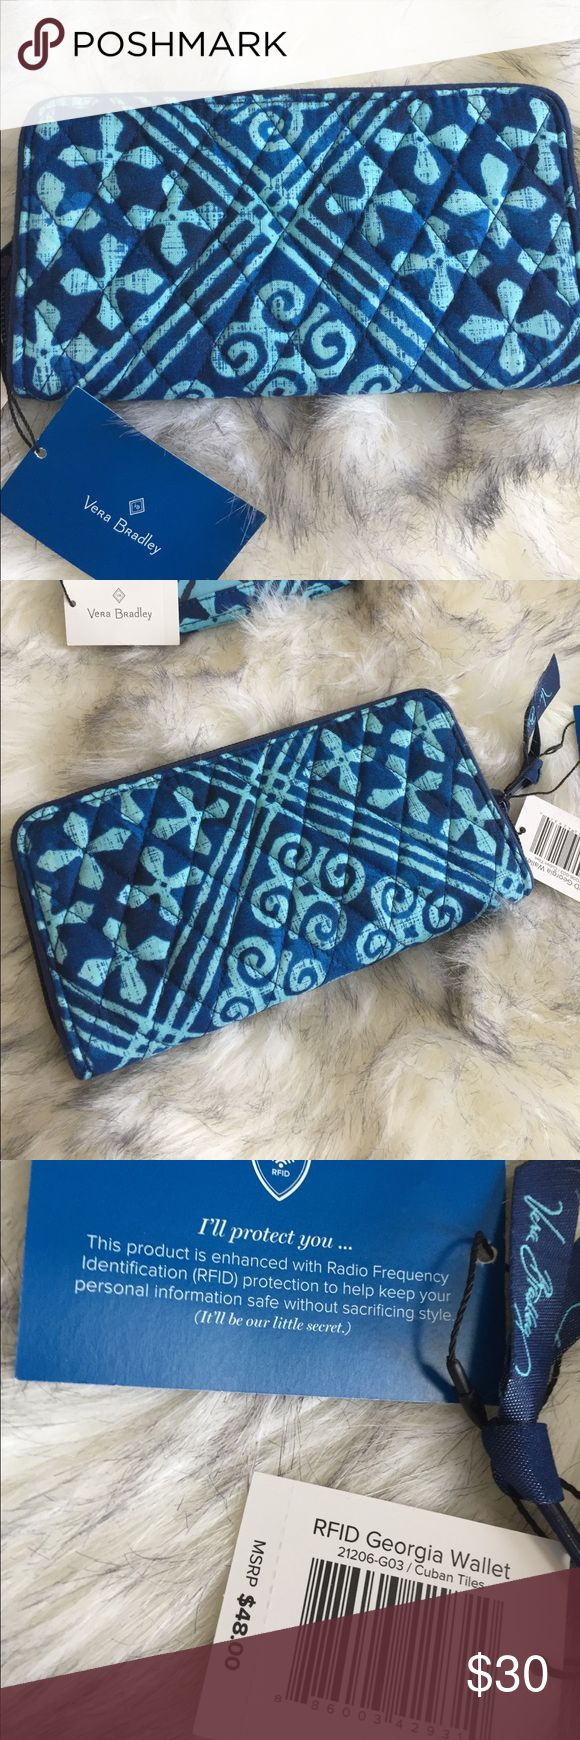 Vera Bradley Matching Bundle NWT Brand new Vera Bradley Wallet in the pattern Cuban Tiles. This Wallet is also enhanced with Radio frequency identification to help keep your personal information in the wallet safe! And also included a matching Zip ID Case. Vera Bradley Bags